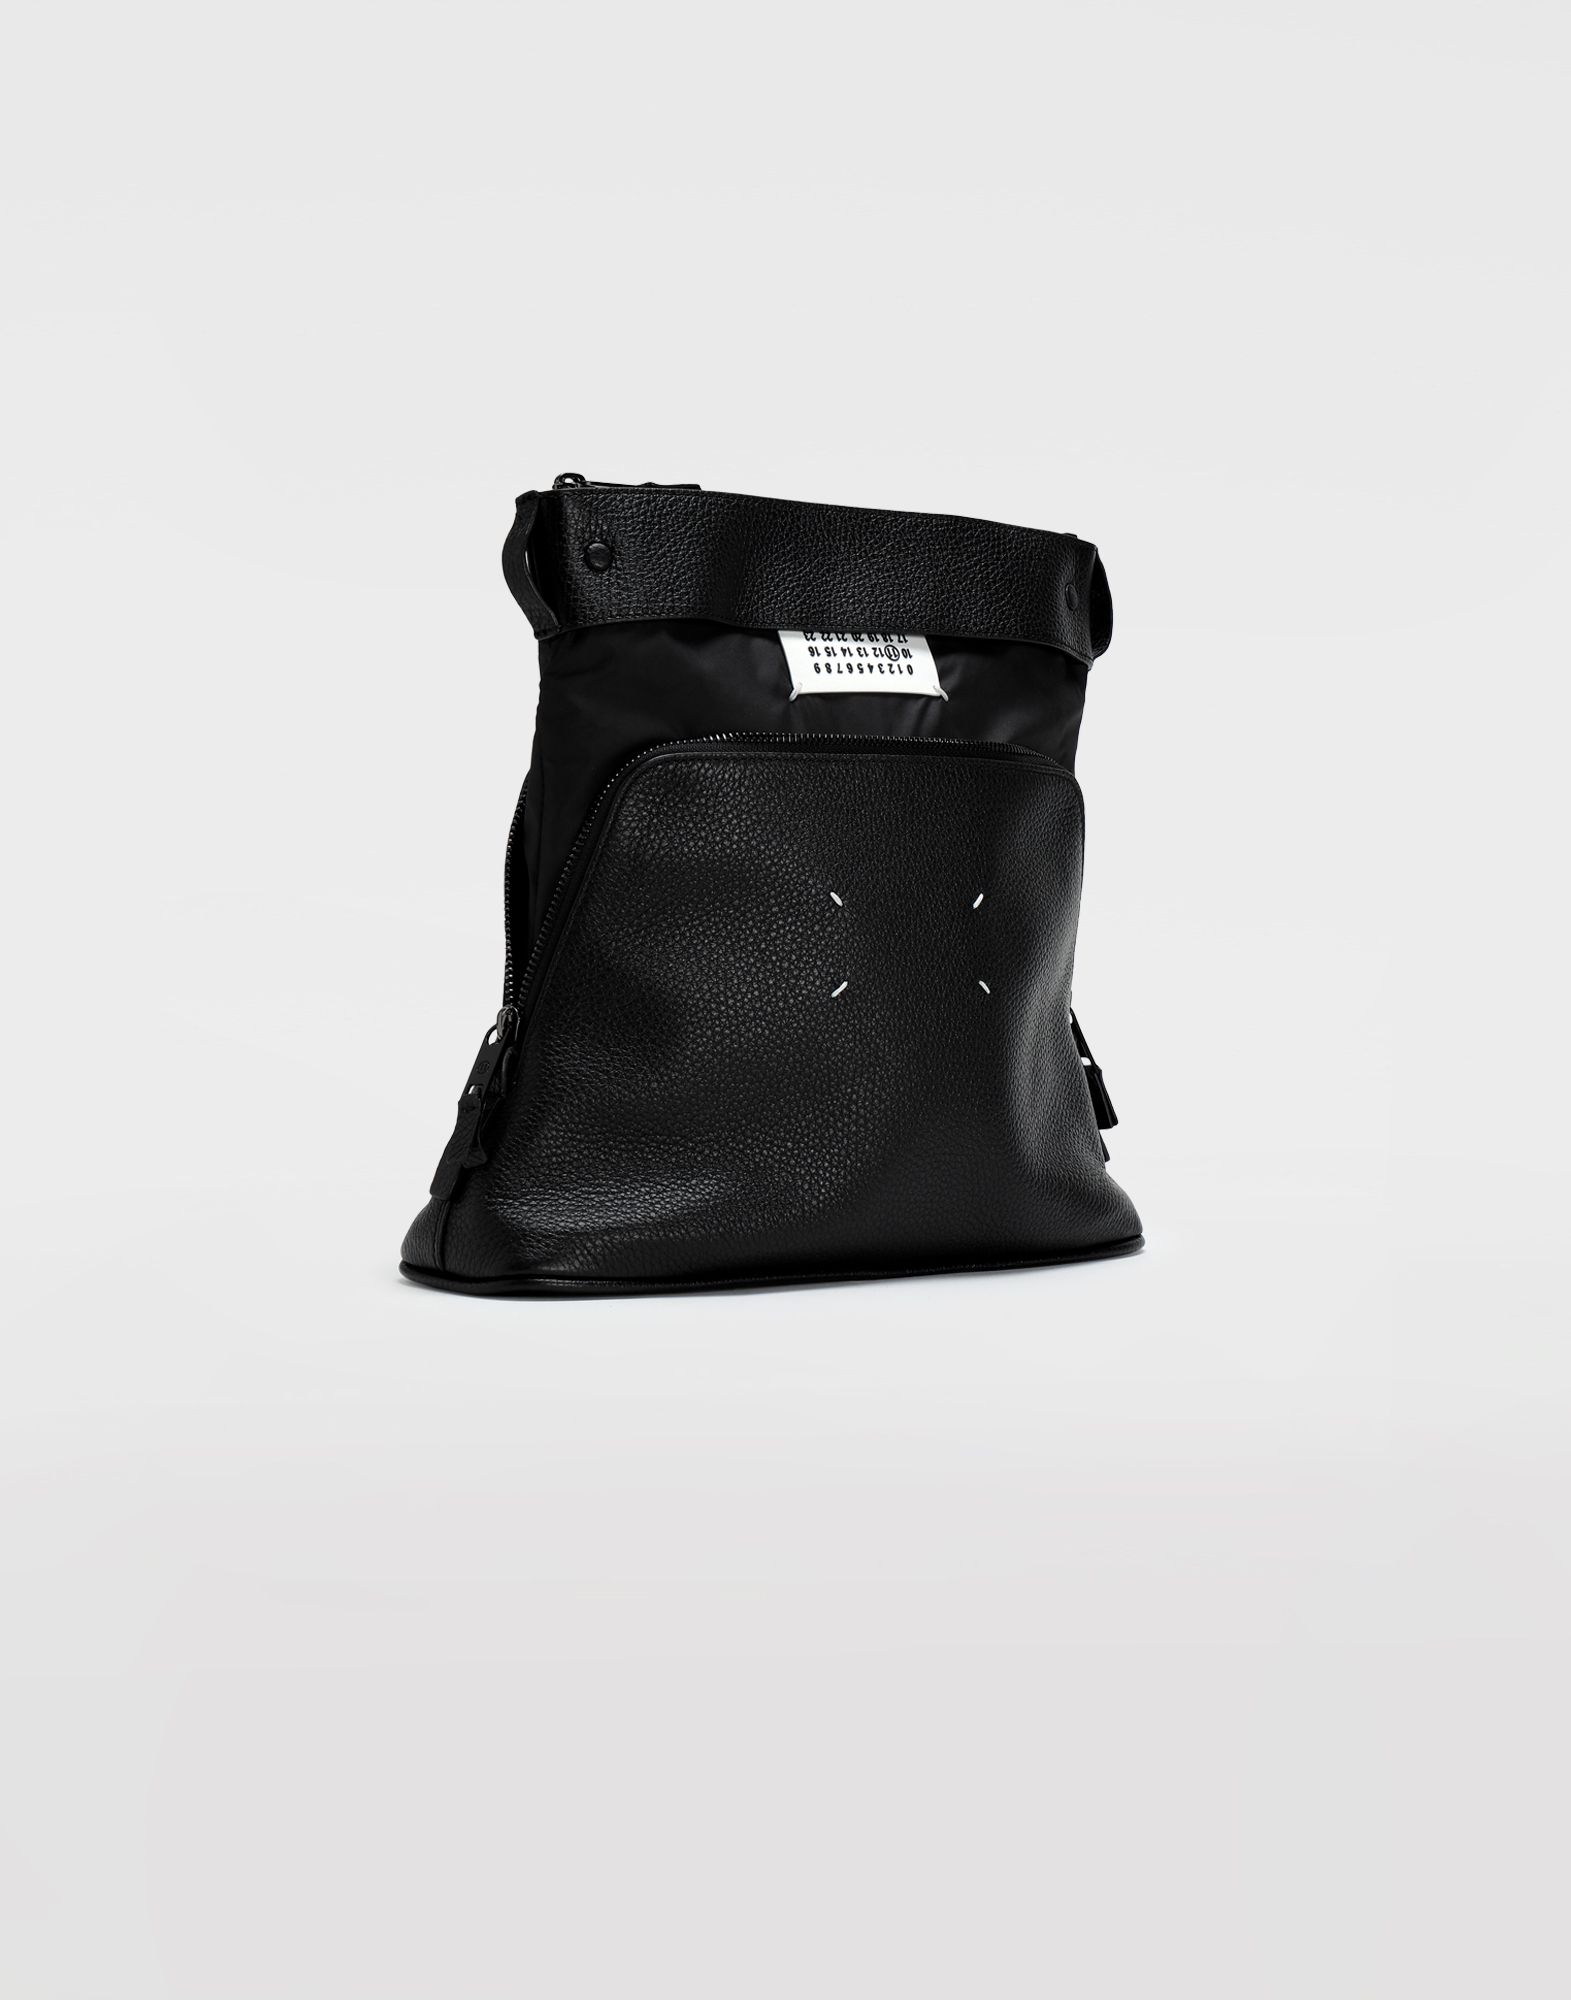 MAISON MARGIELA Dual-wear bag Wallets Man e